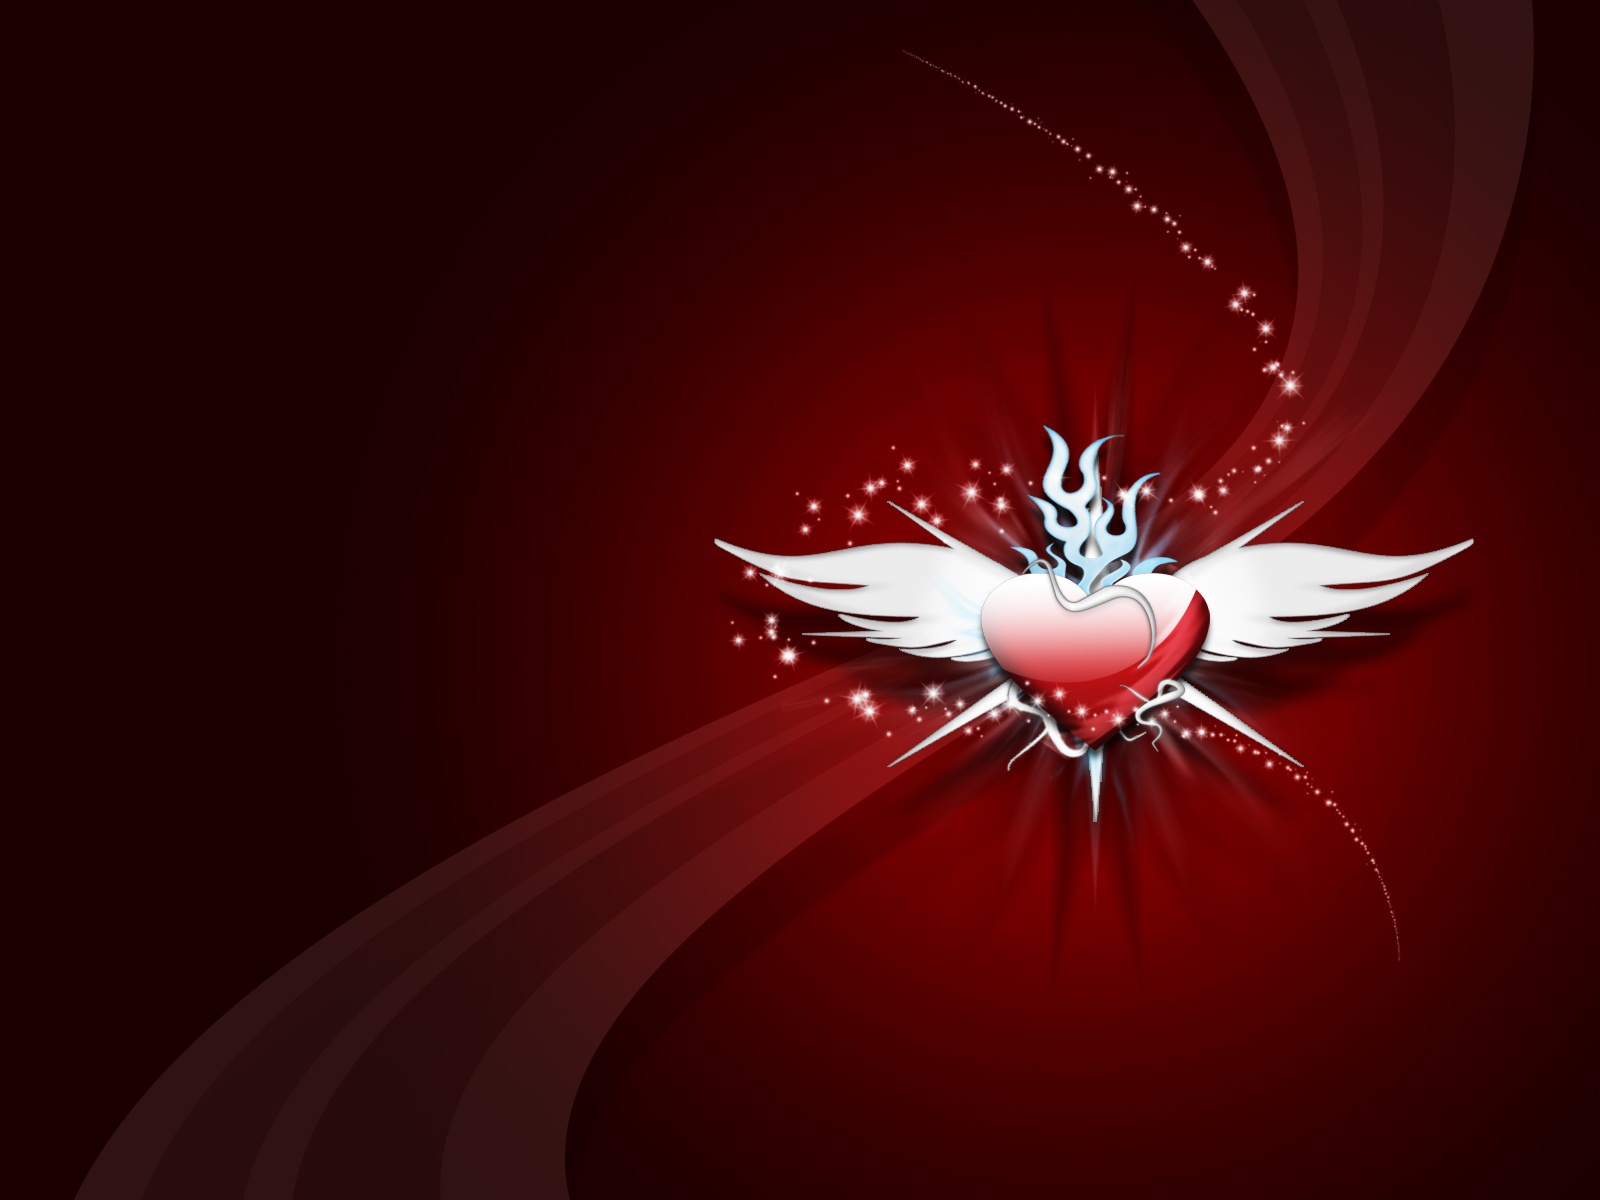 Red Abstract Desktop With Heart Wings 339580 Wallpaper wallpaper